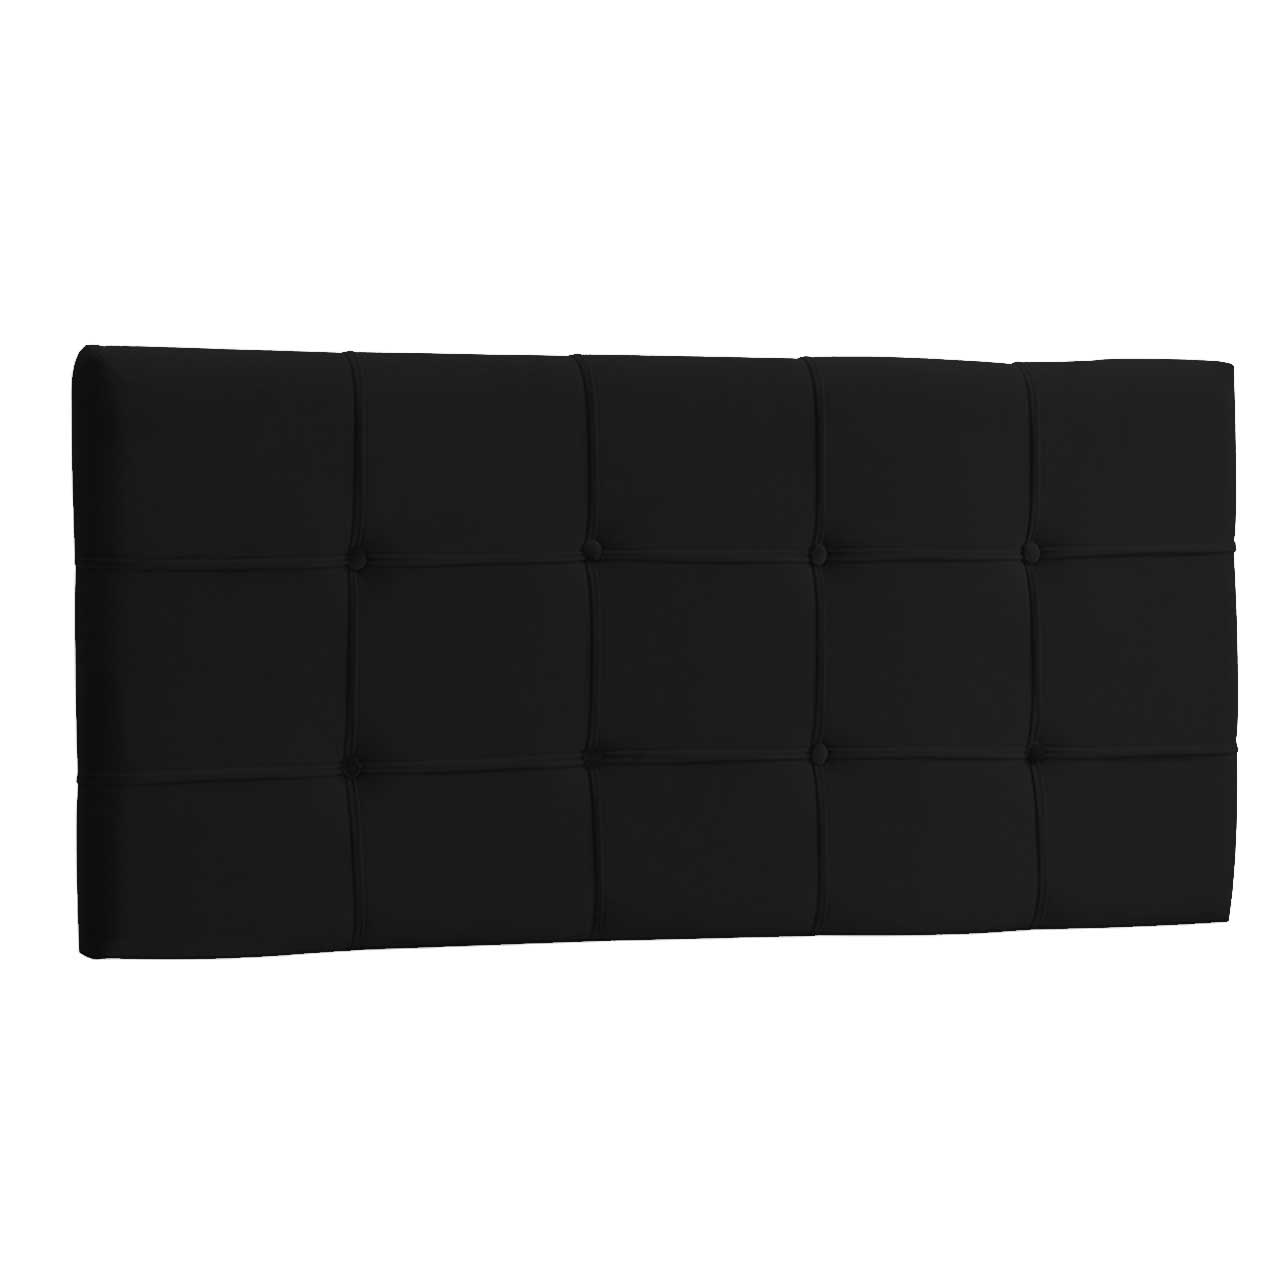 Cabeceira Painel King Ana Luisa 1,95 m Suede Preto